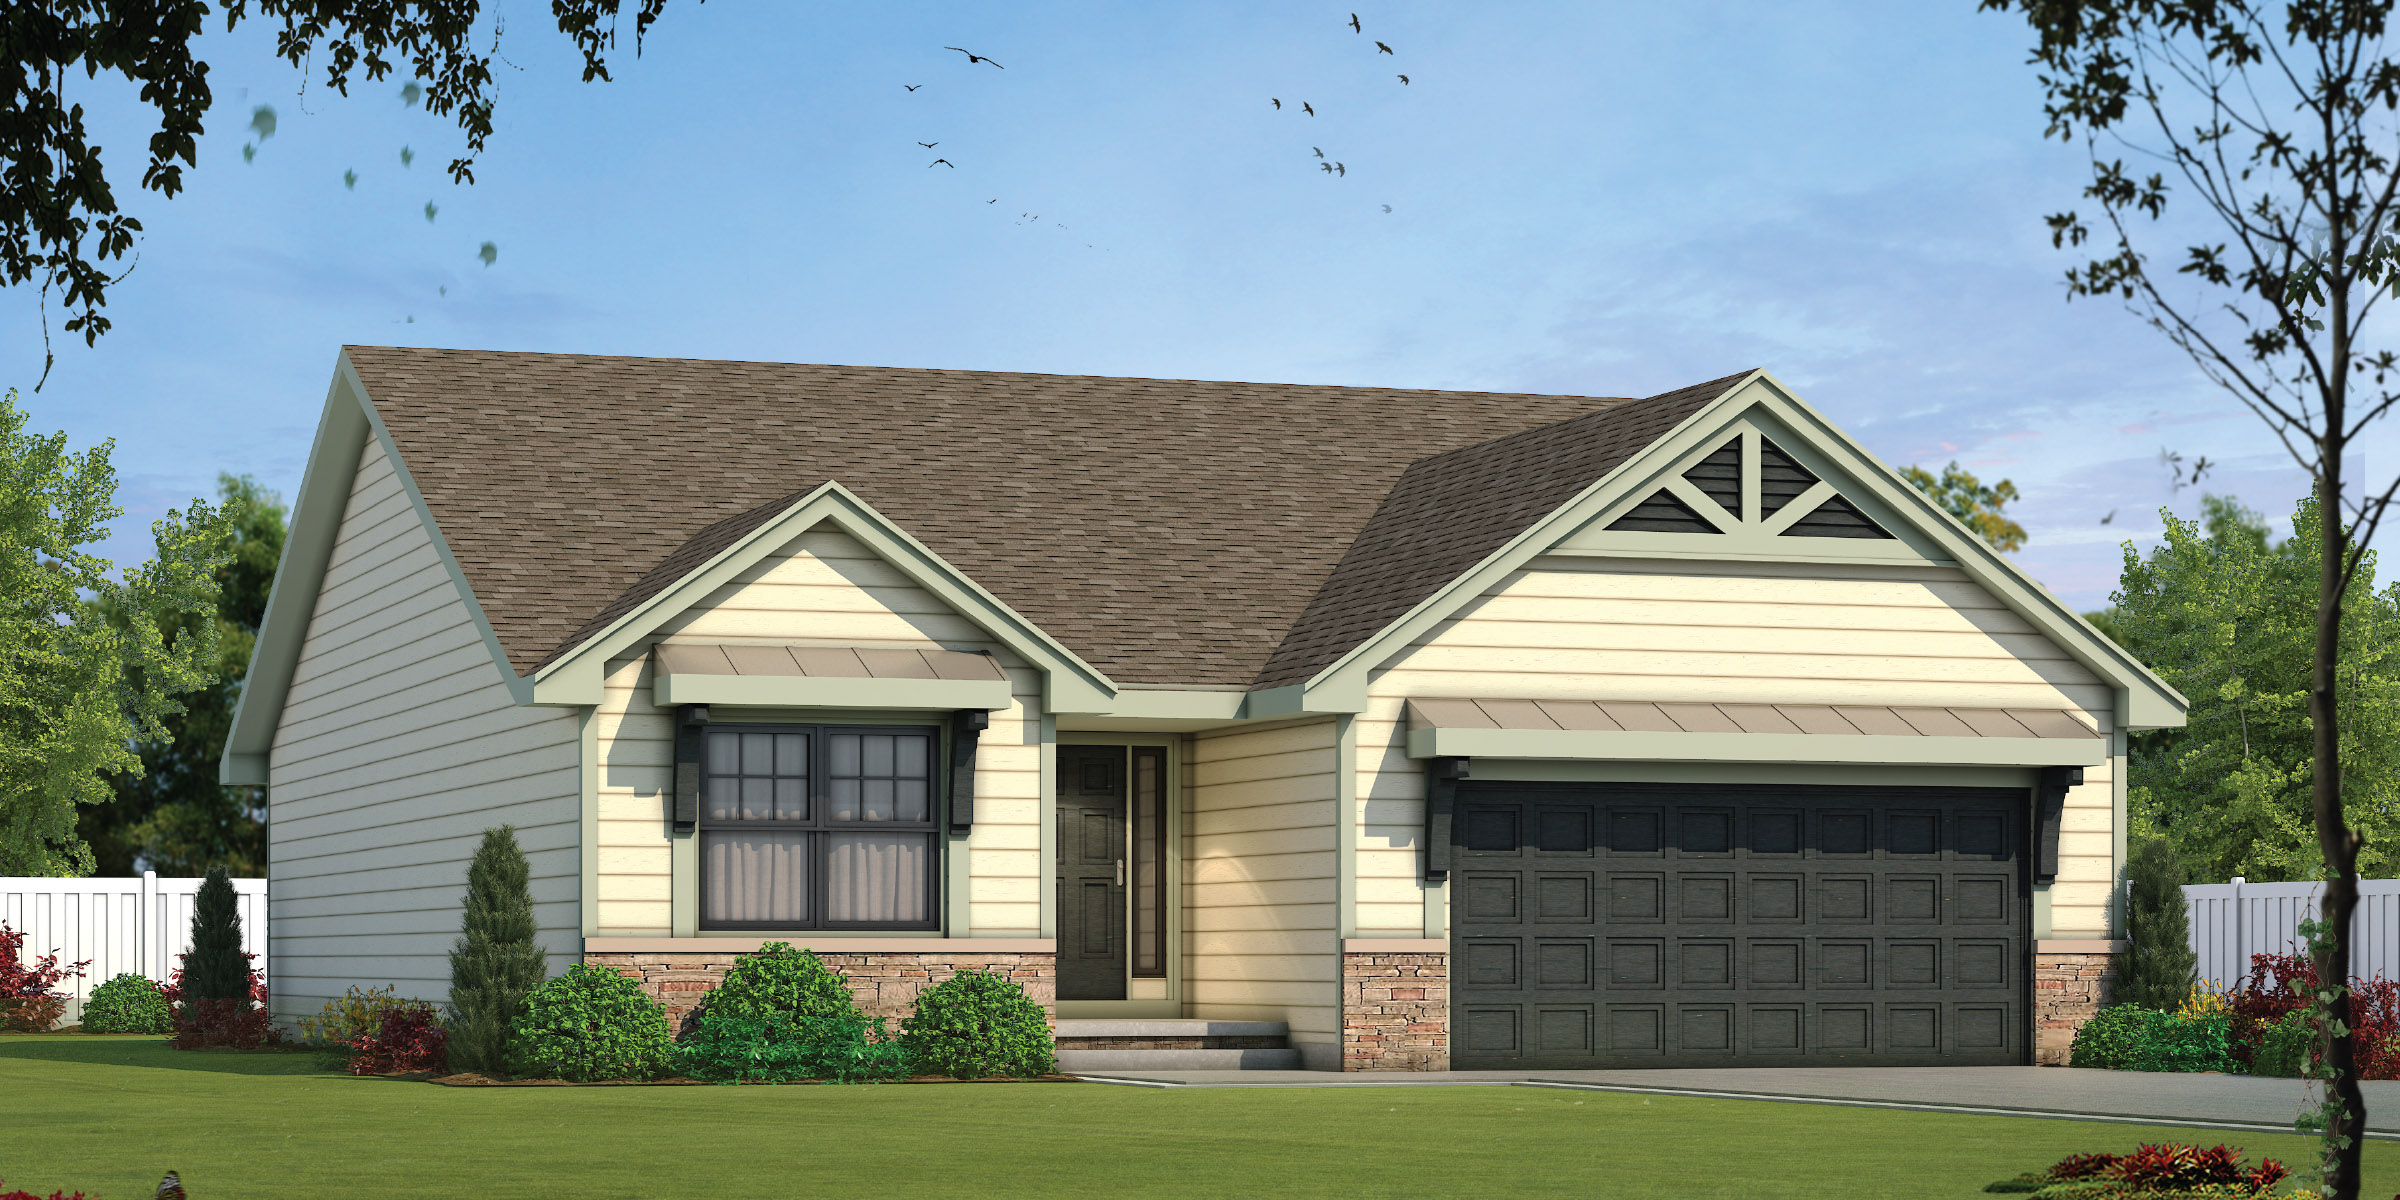 The Oakmont Floor Plan by Ashlar Homes